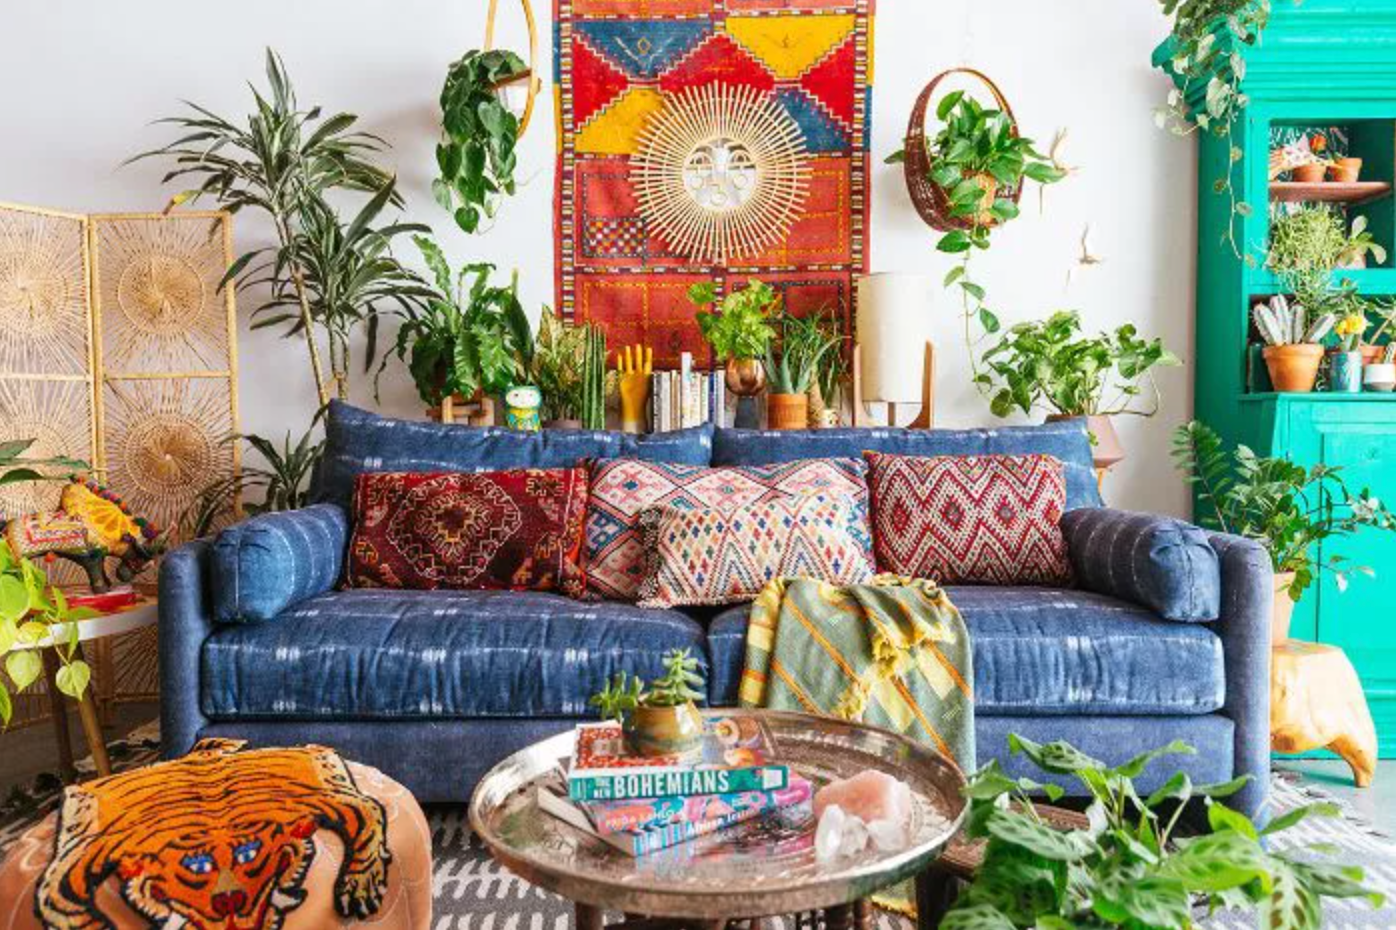 Bohemian living room with colorful décor